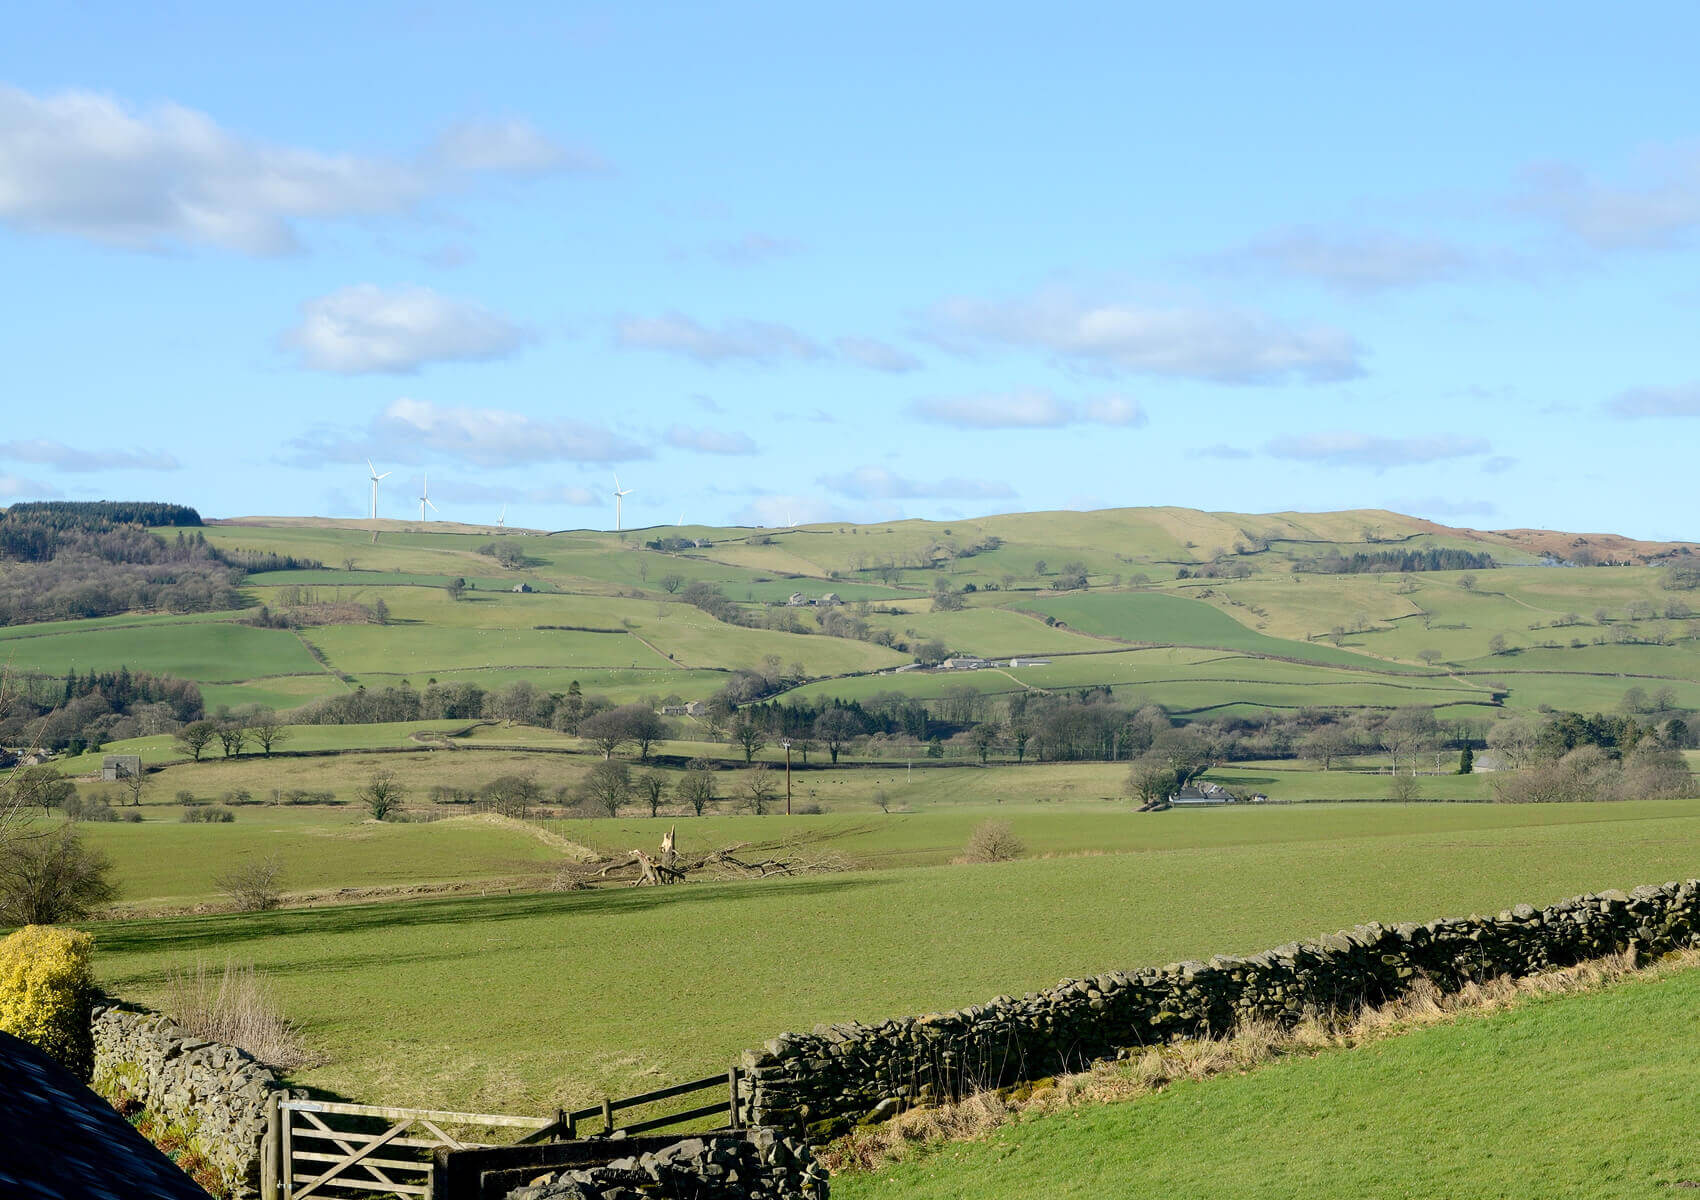 Landscape photo of the countryside in the Lake District